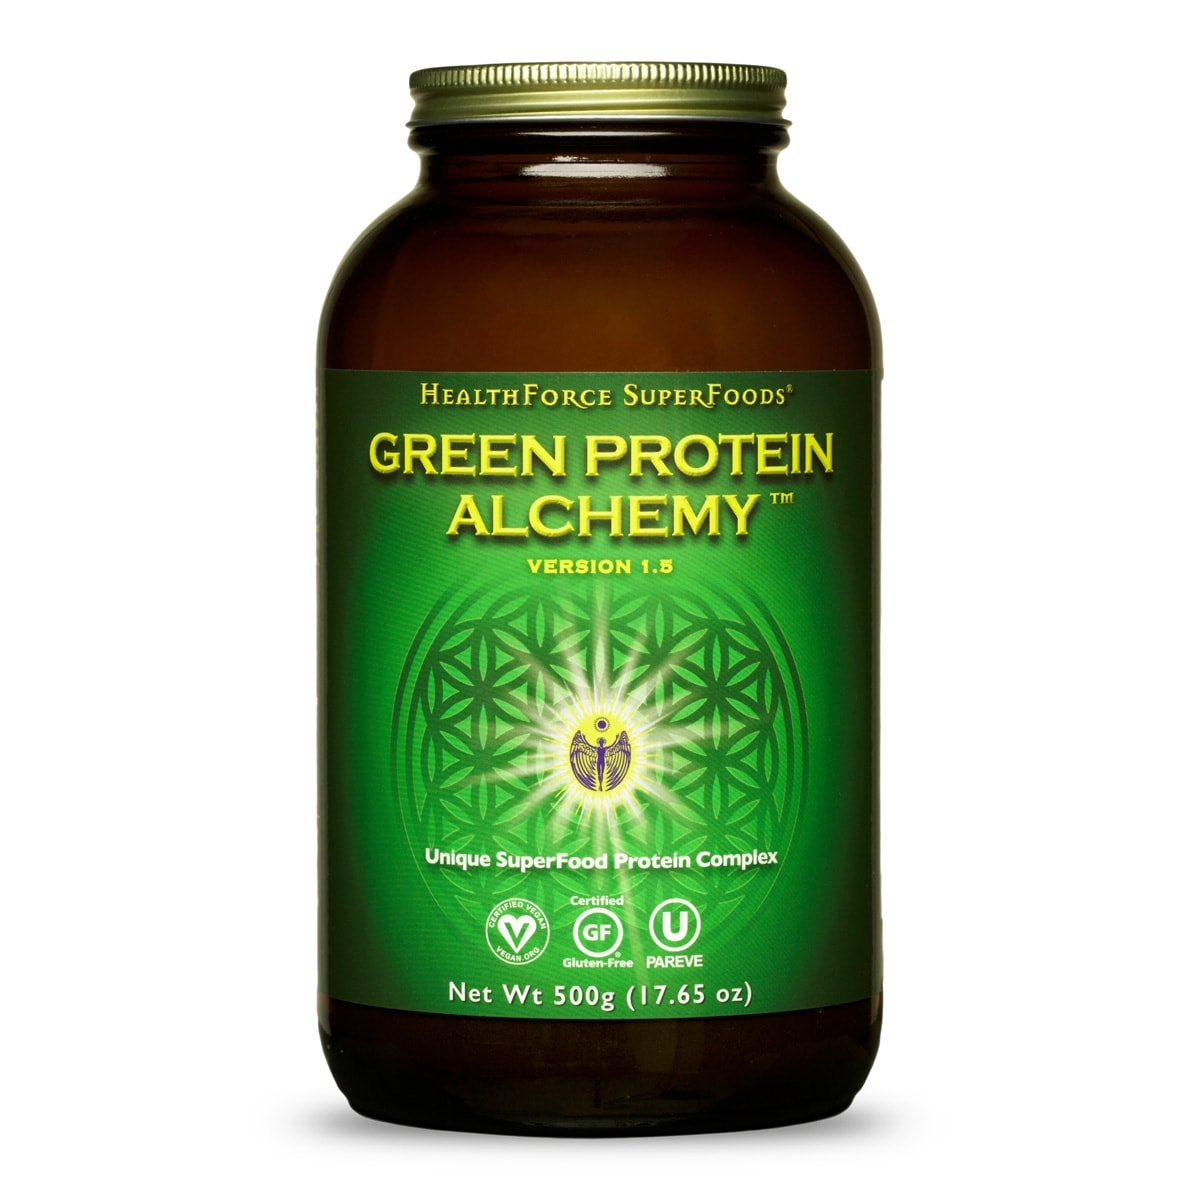 Green Protein Alchemy™